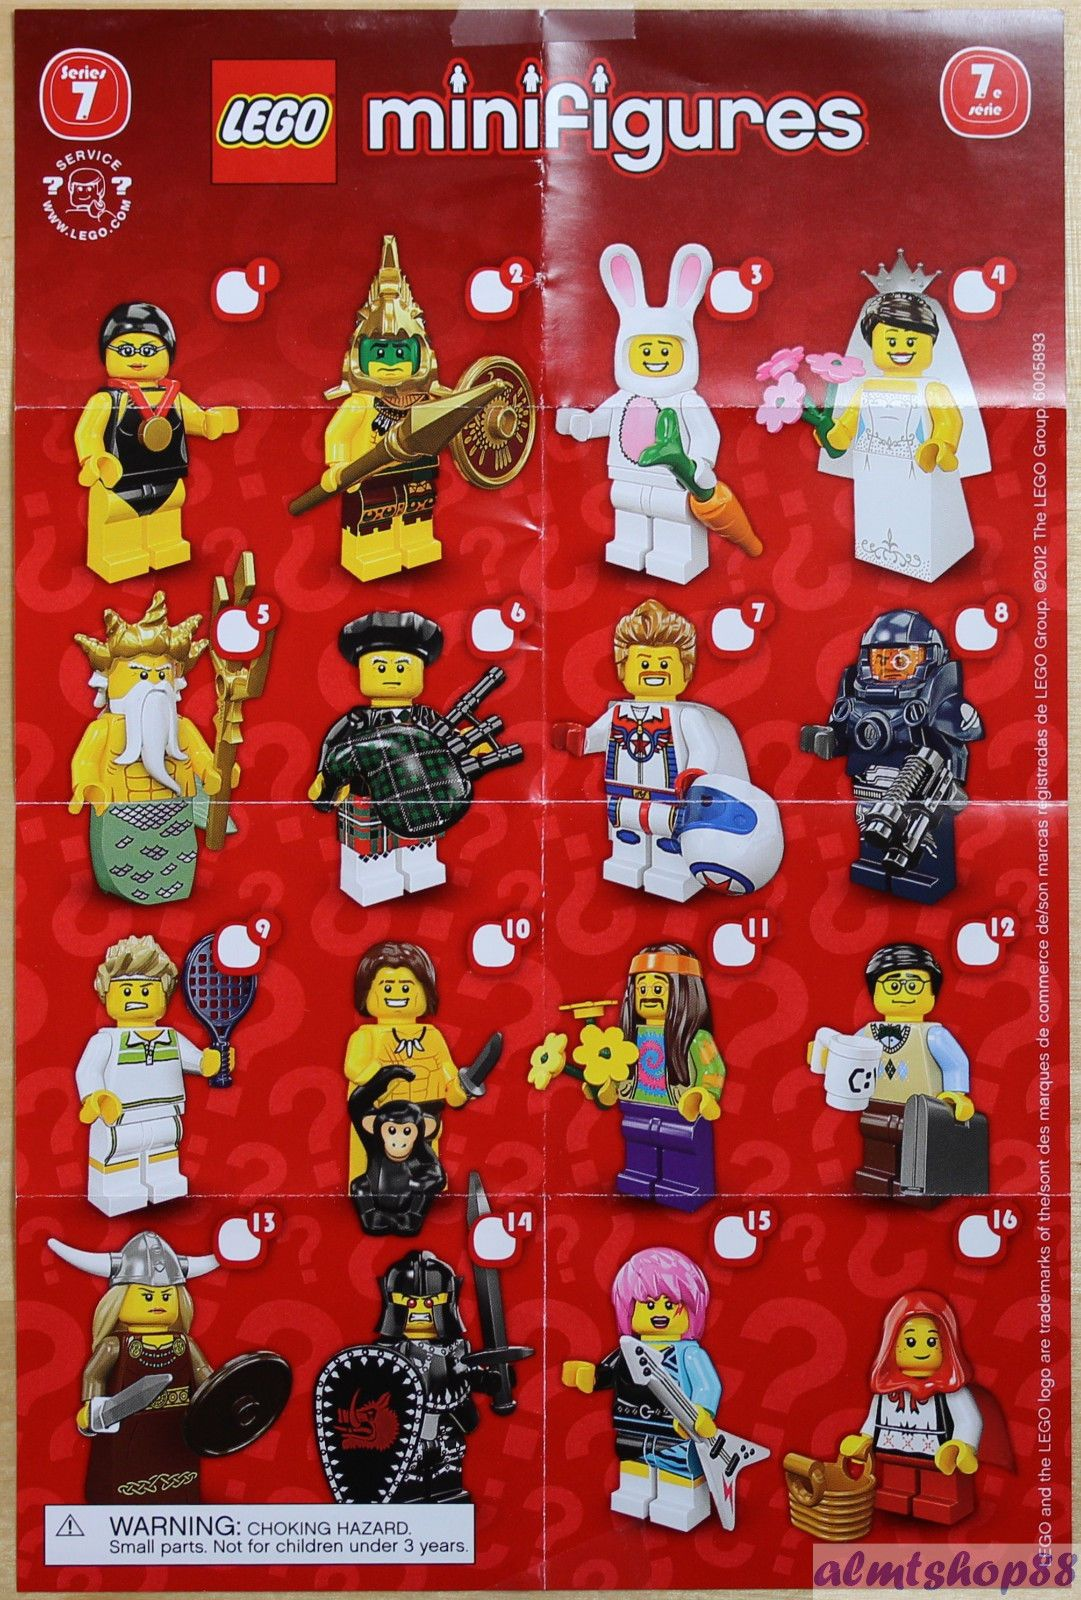 lego mini poster leaflet minifigures series 1 2 3 4 5 6 7 8 9 10 11 12 13 14 15 toys hobbies. Black Bedroom Furniture Sets. Home Design Ideas